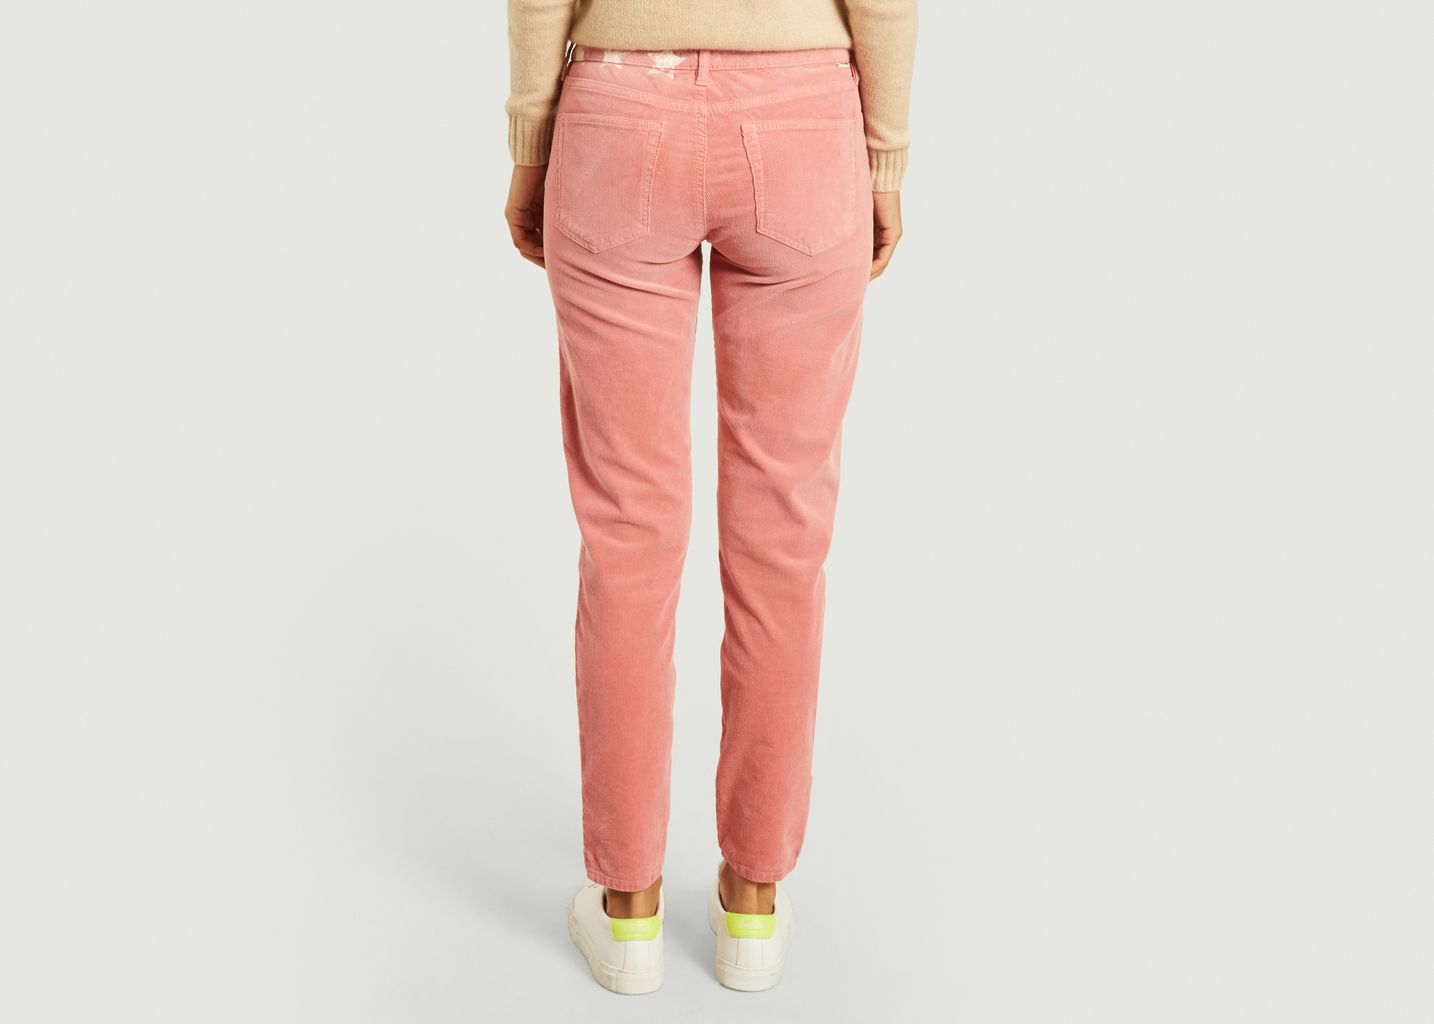 Pantalon slim en velours côtelé Colette 139 - Five